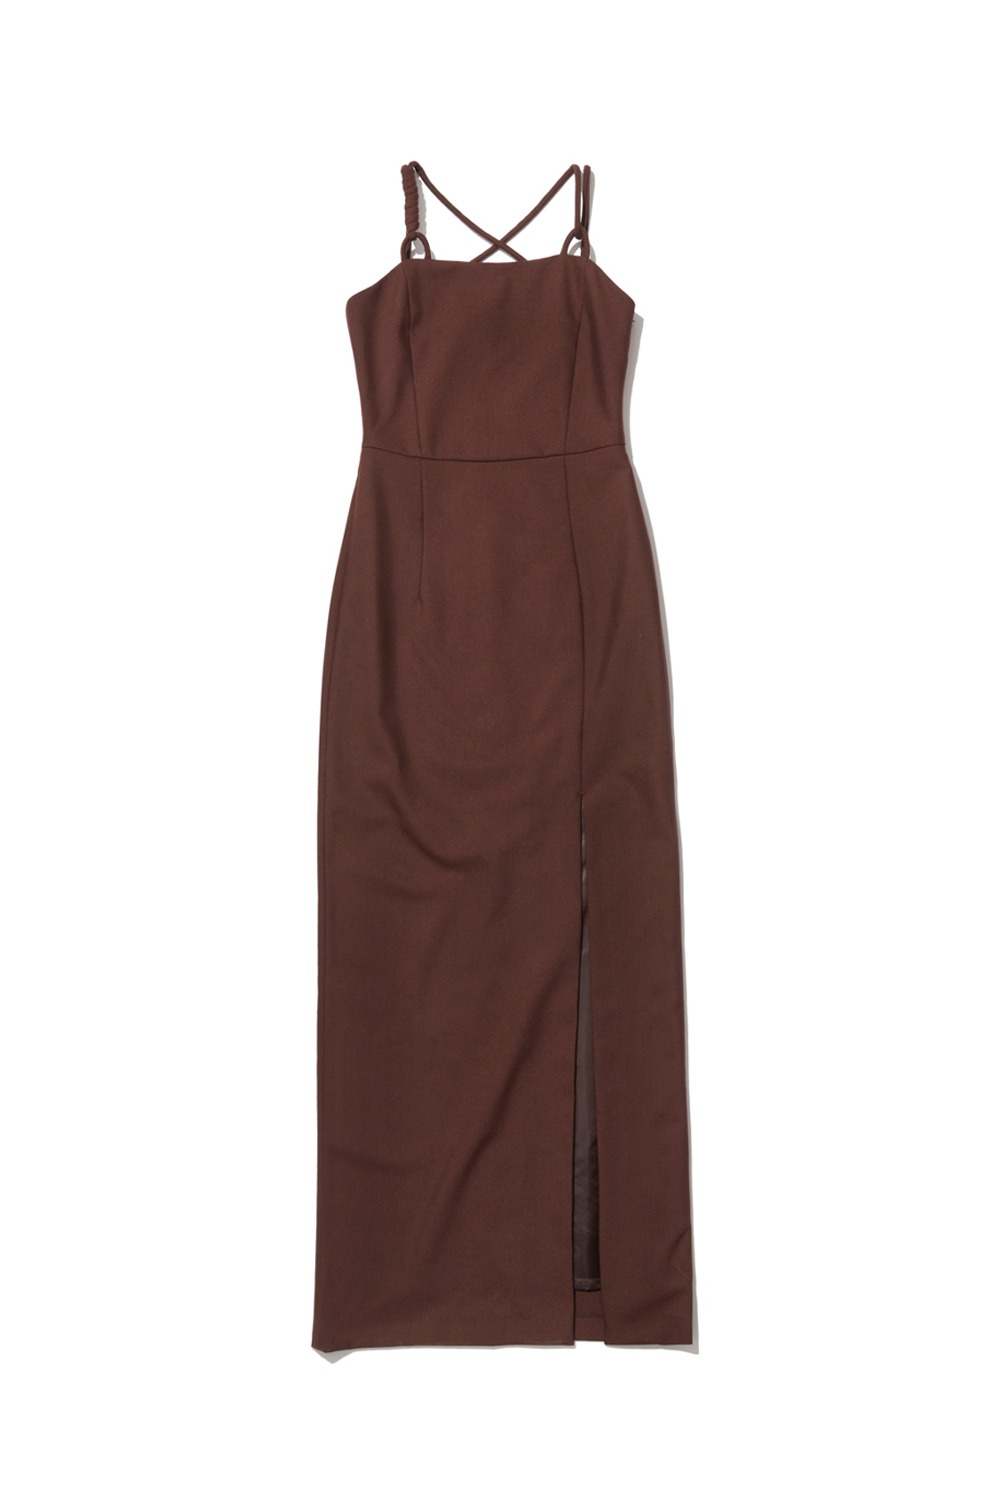 PROJECT MAGO_TAILORED STRAP DRESS_BROWN